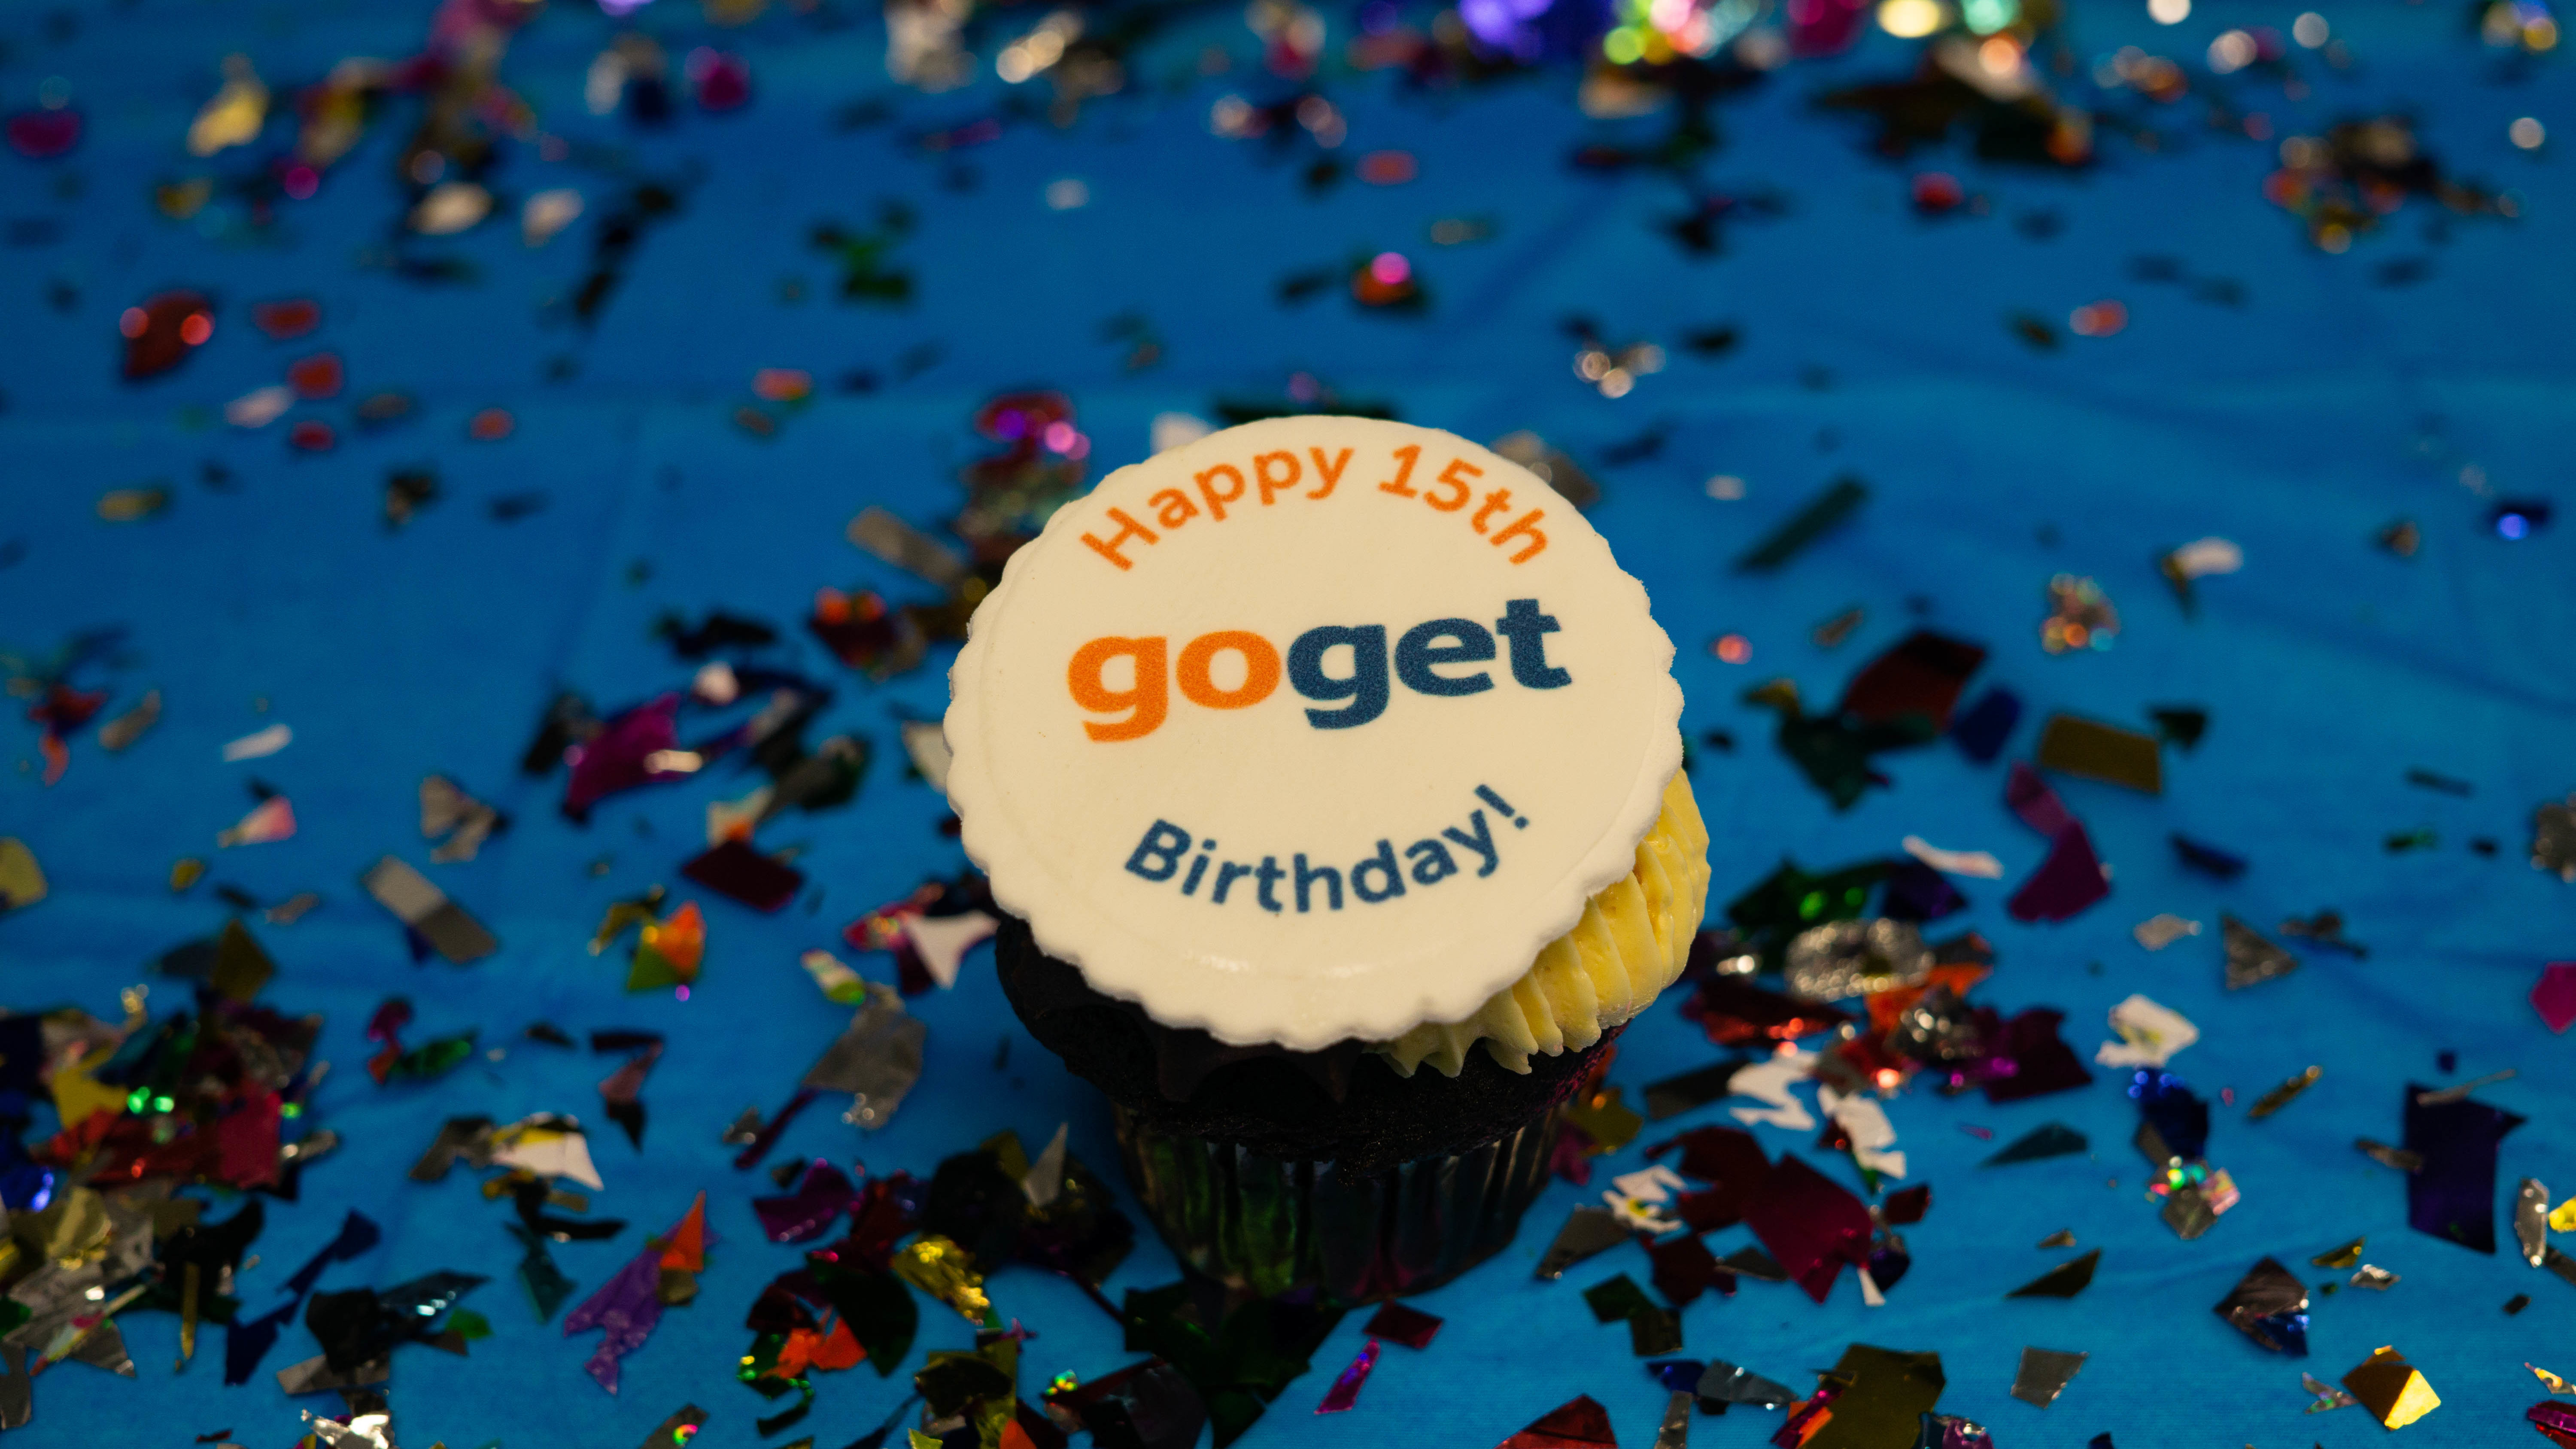 A cupcake with printed icing saying Happy 15th birthday GoGet on a a blue table covered in glitter